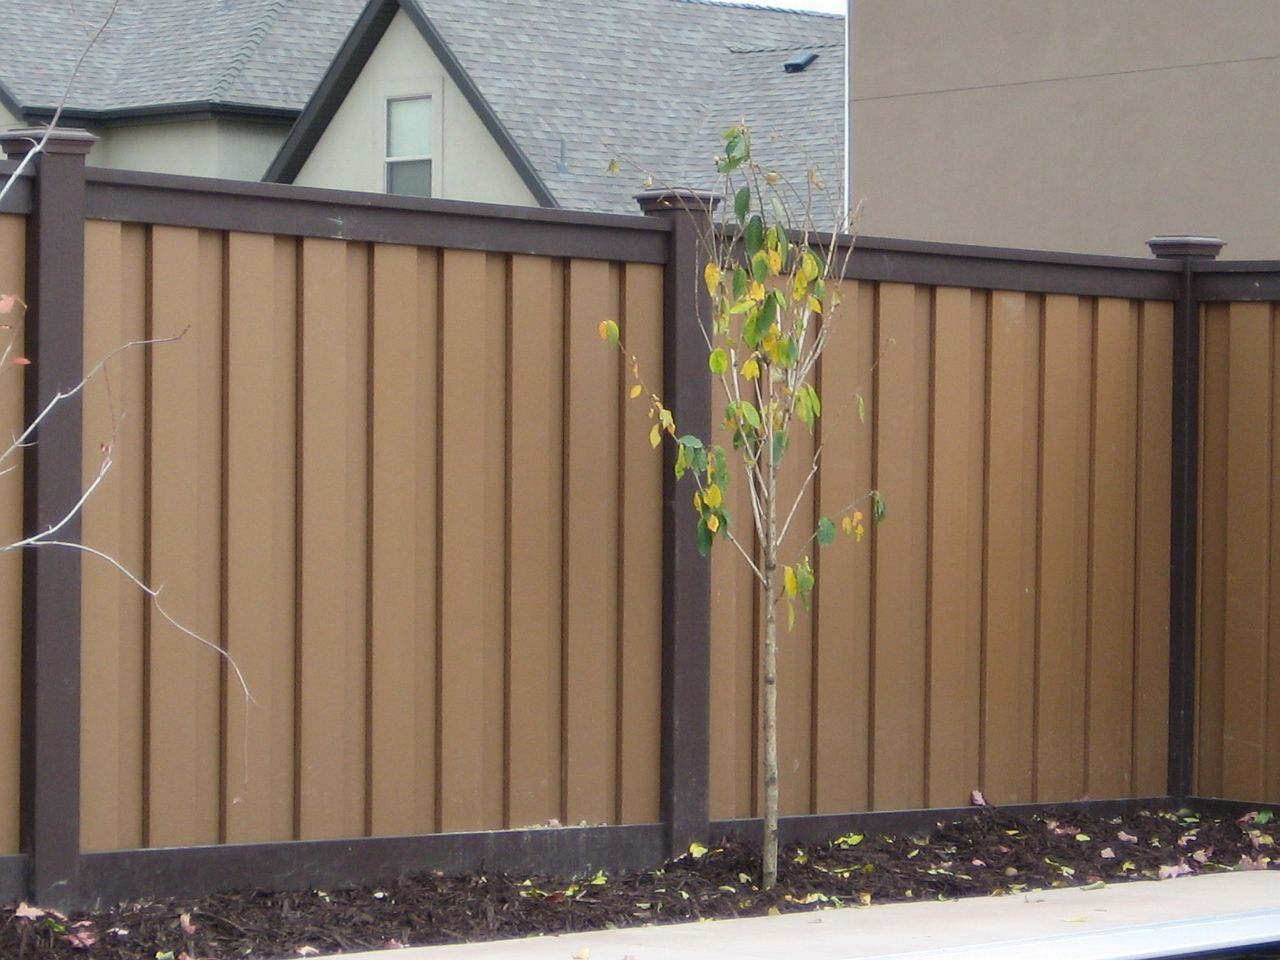 Trex Seclusions Woodland Brown Fence Garden Fence Panels Fence Design Garden Fence